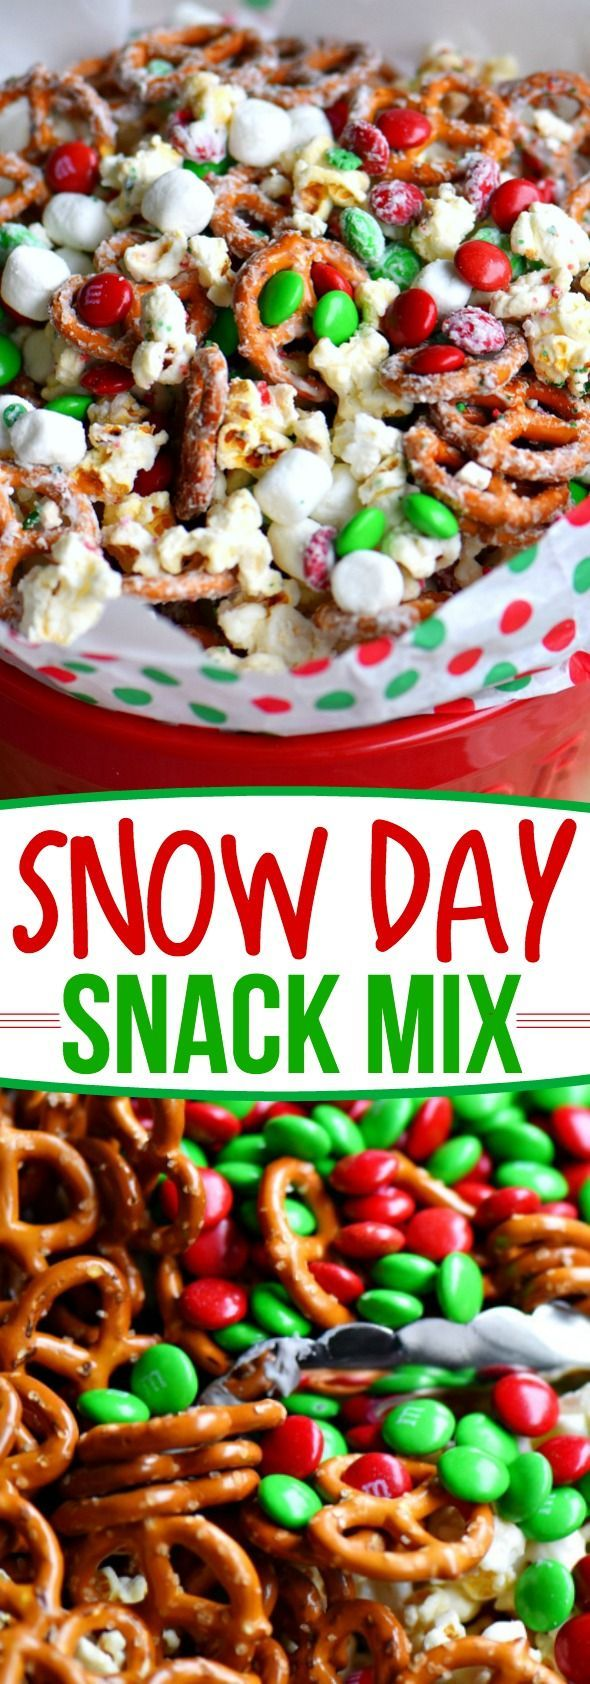 This wonderfully festive Snow Day Snack Mix is the perfect easy treat all winter long!  Both sweet and salty, this holiday snack mix is great for Christmas, movie nights, parties, gifts and so much more! // Mom On Timeout  christmas  dessert  snack  pretzels  marshmallows  redandgreen  momontimeout